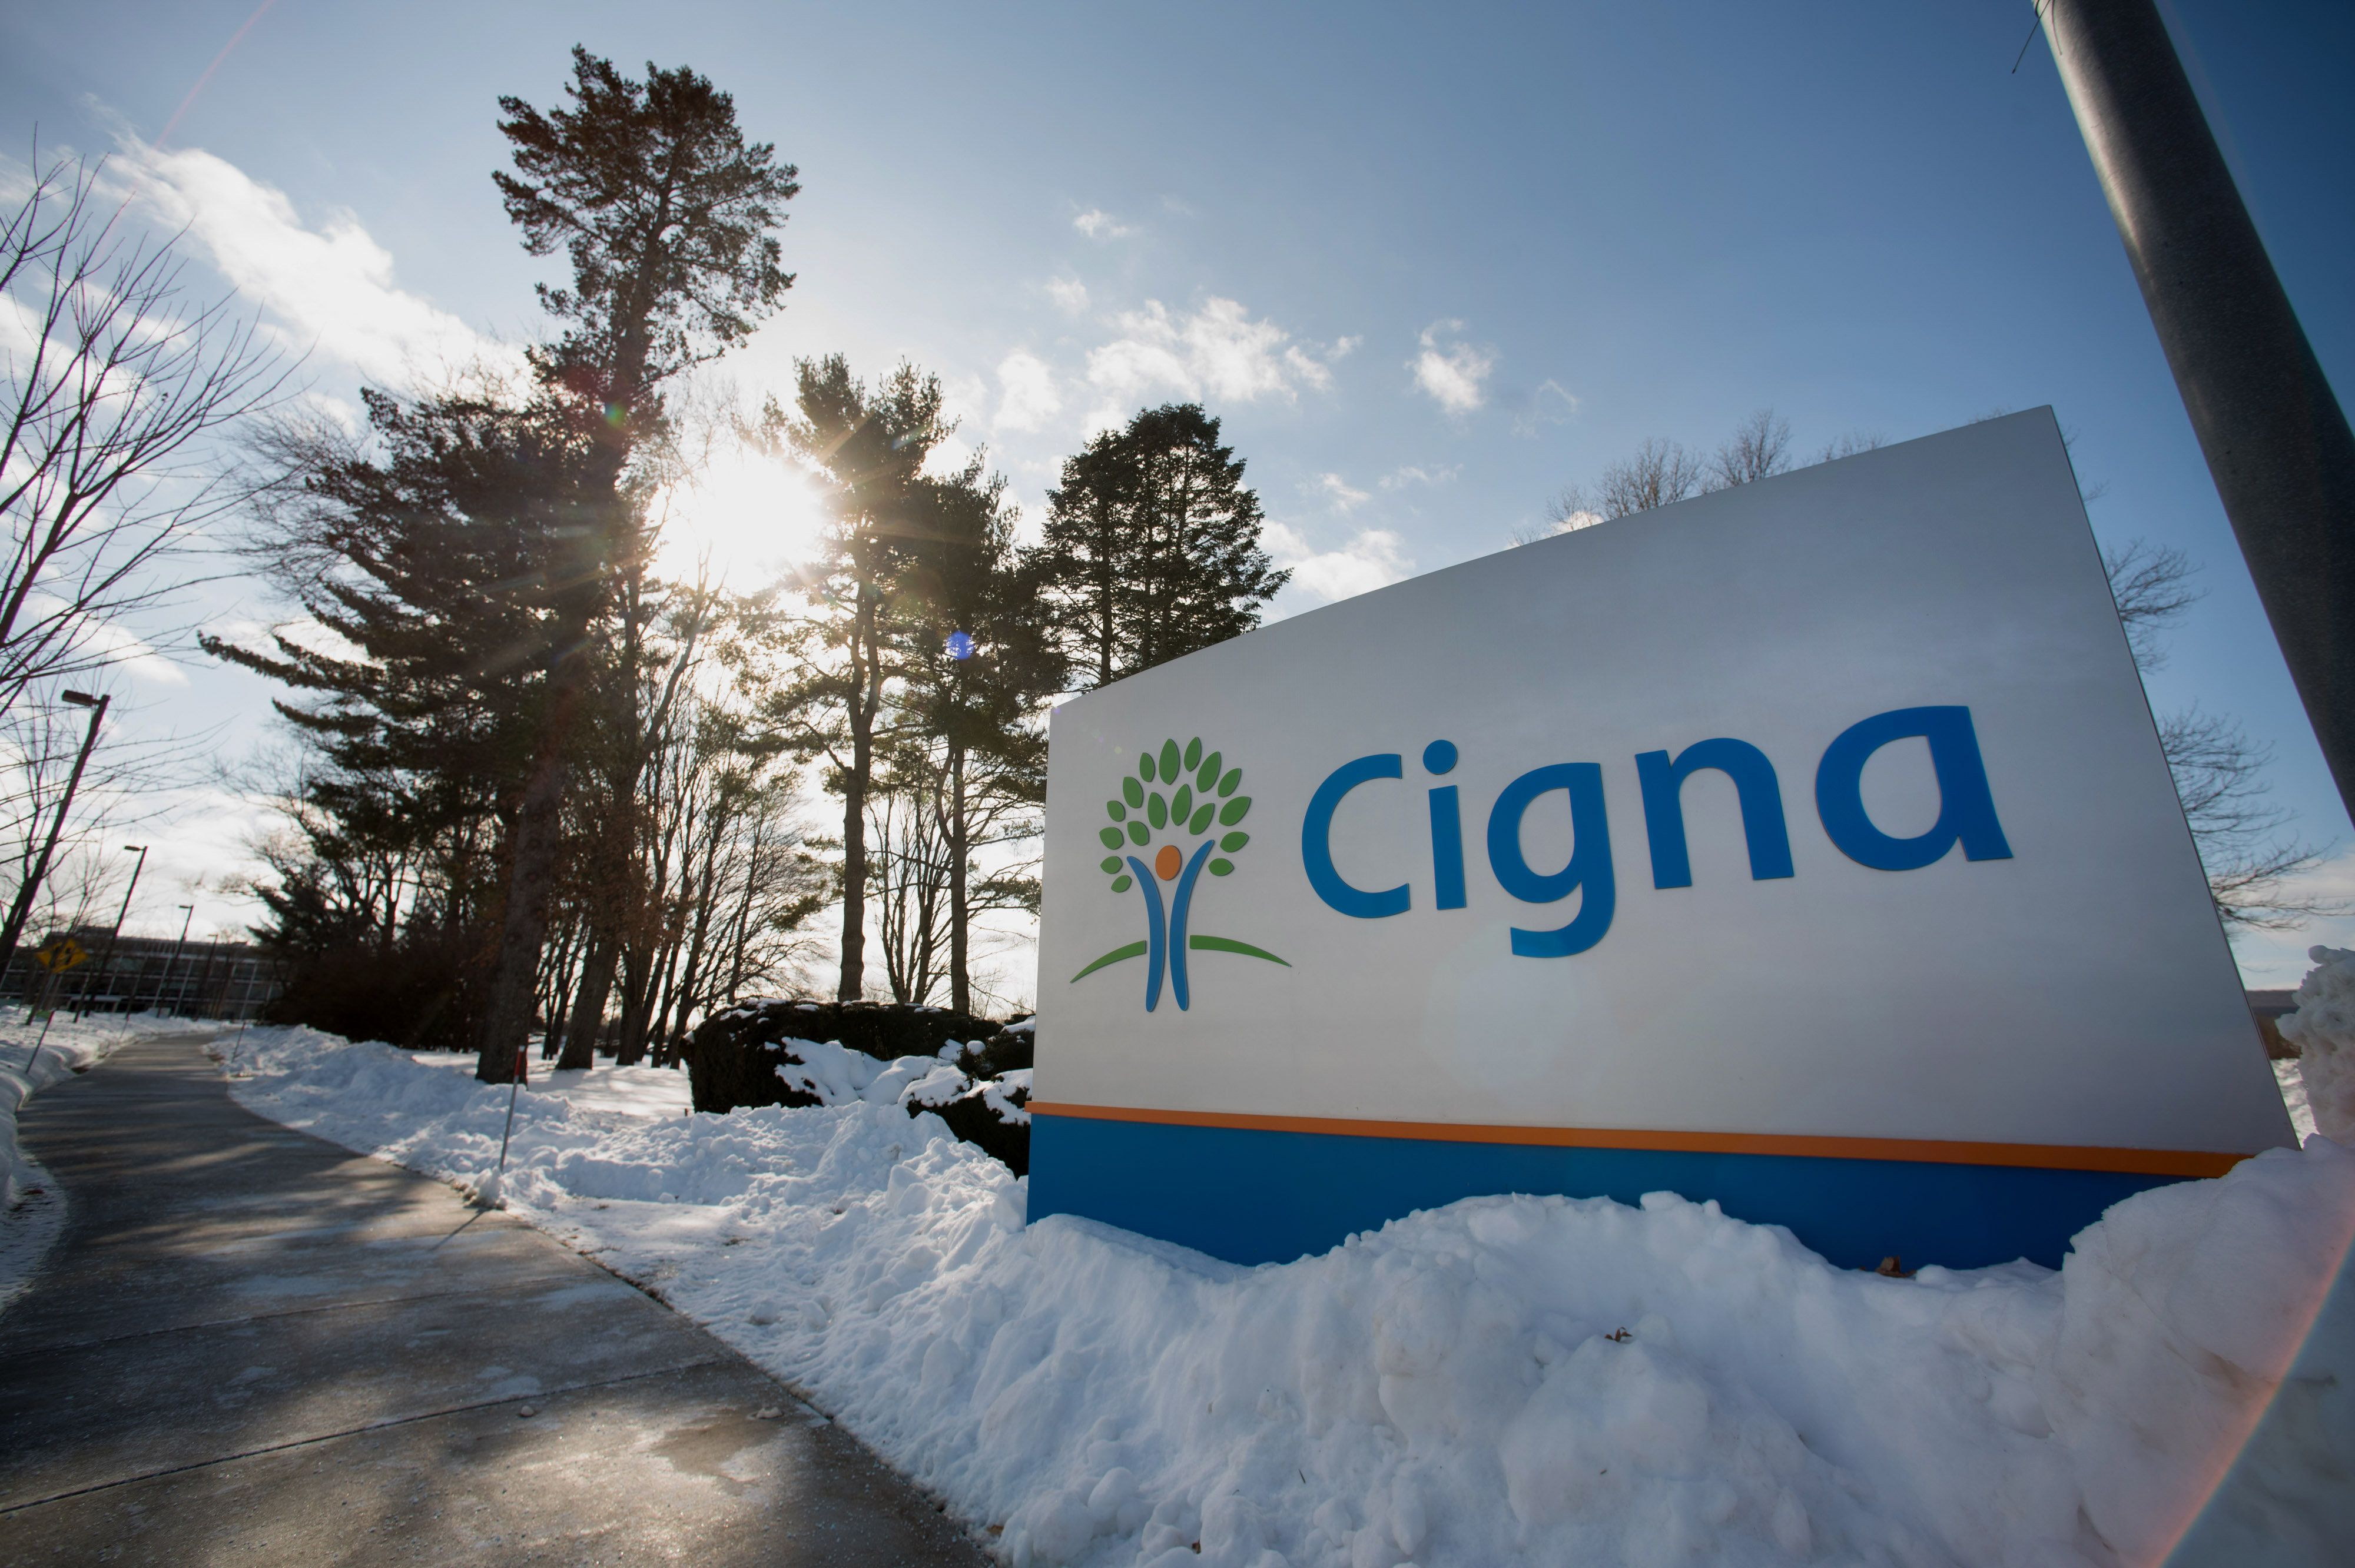 Cigna's purchase of Express Scripts: Drug price relief ahead?